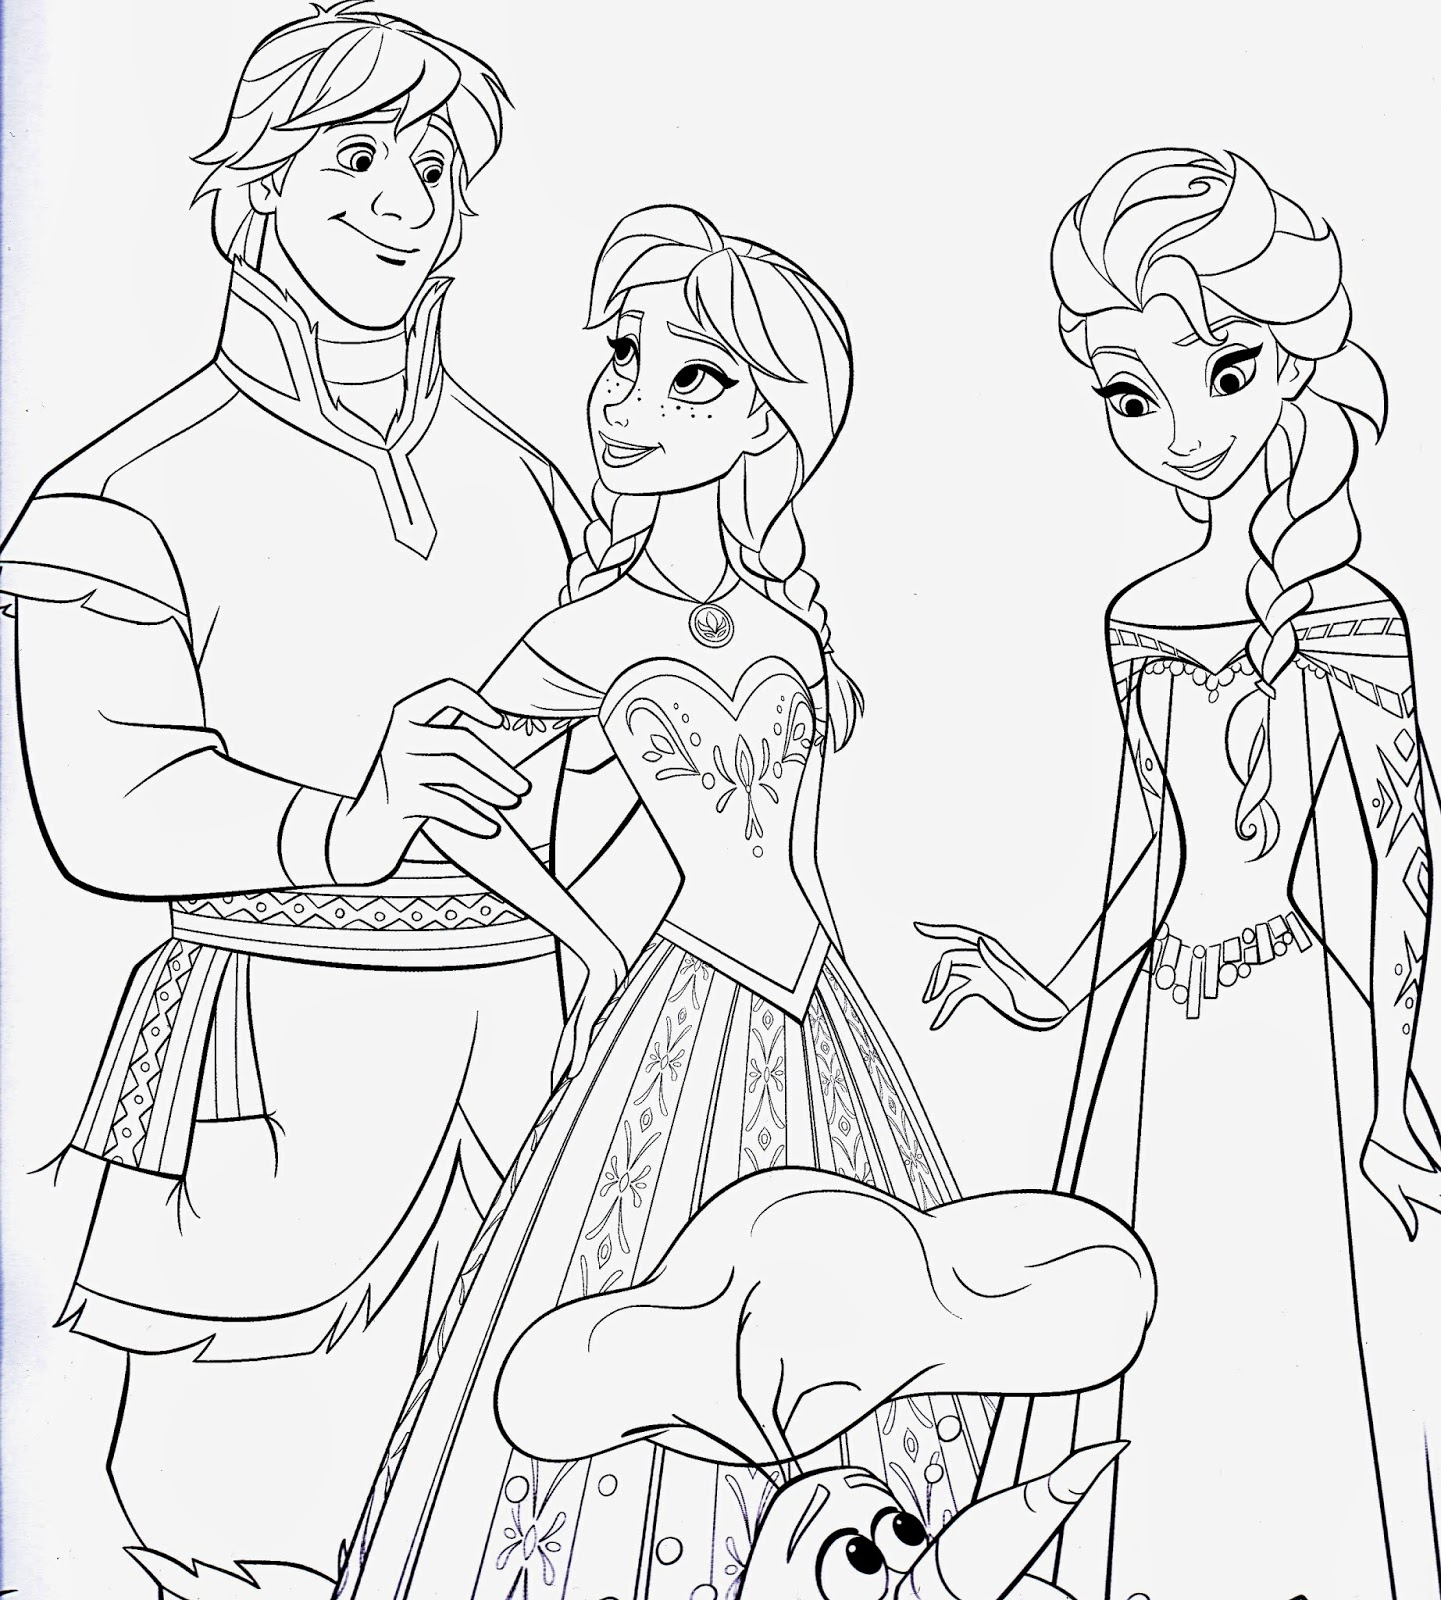 Disney Frozen Coloring Pages Hans : Disney movie princesses quot frozen printable coloring pages